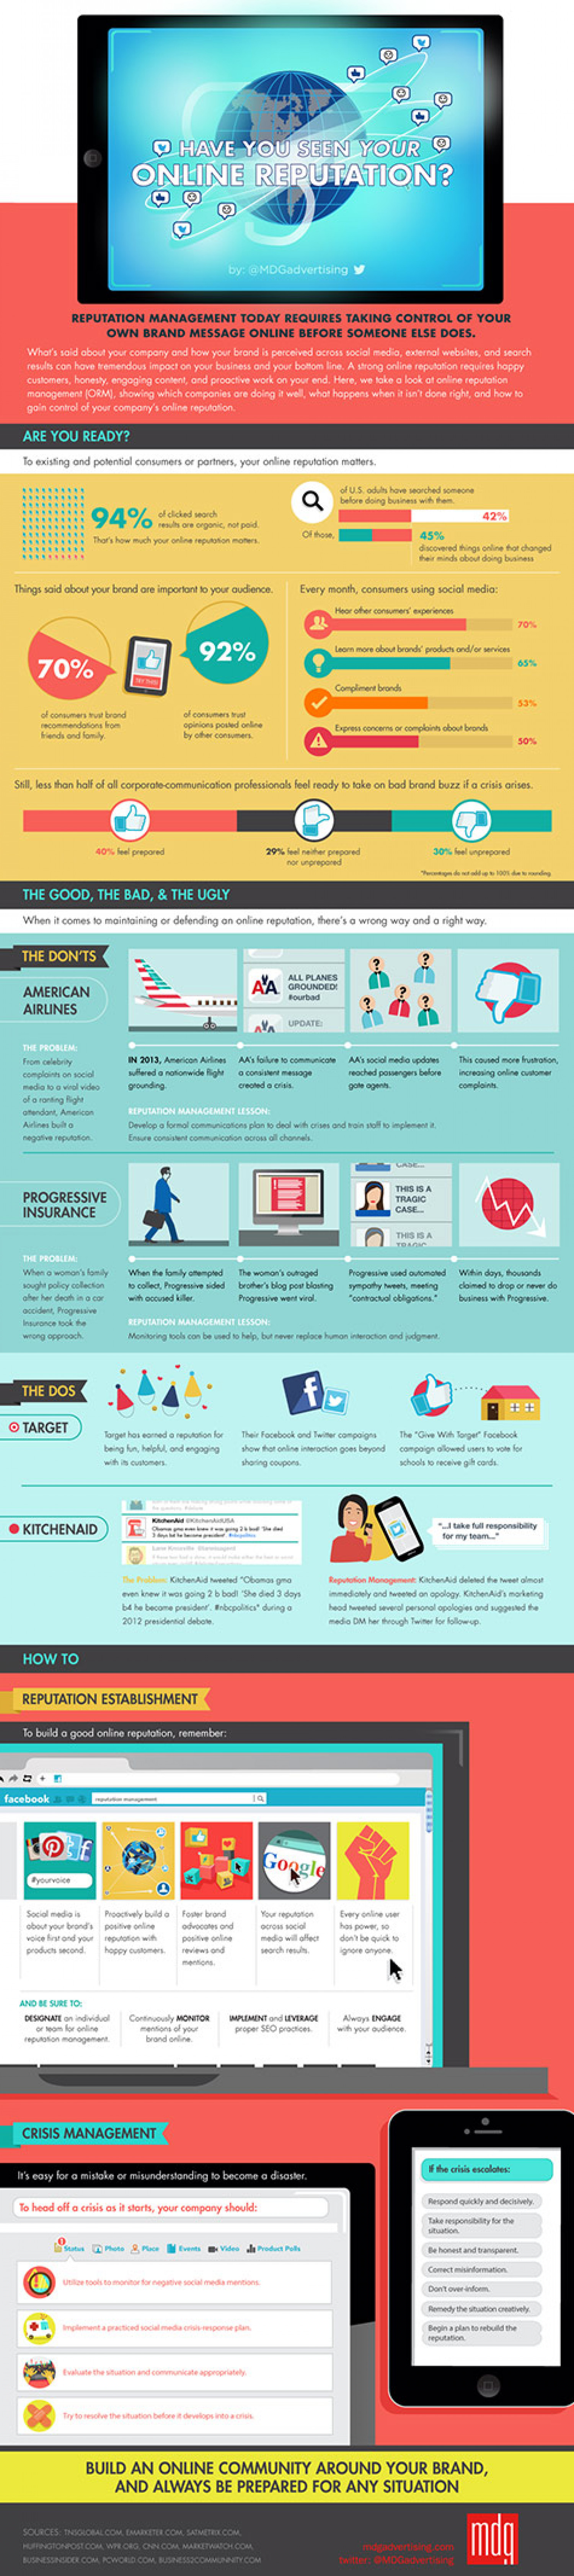 Have You Seen Your Online Reputation? Infographic